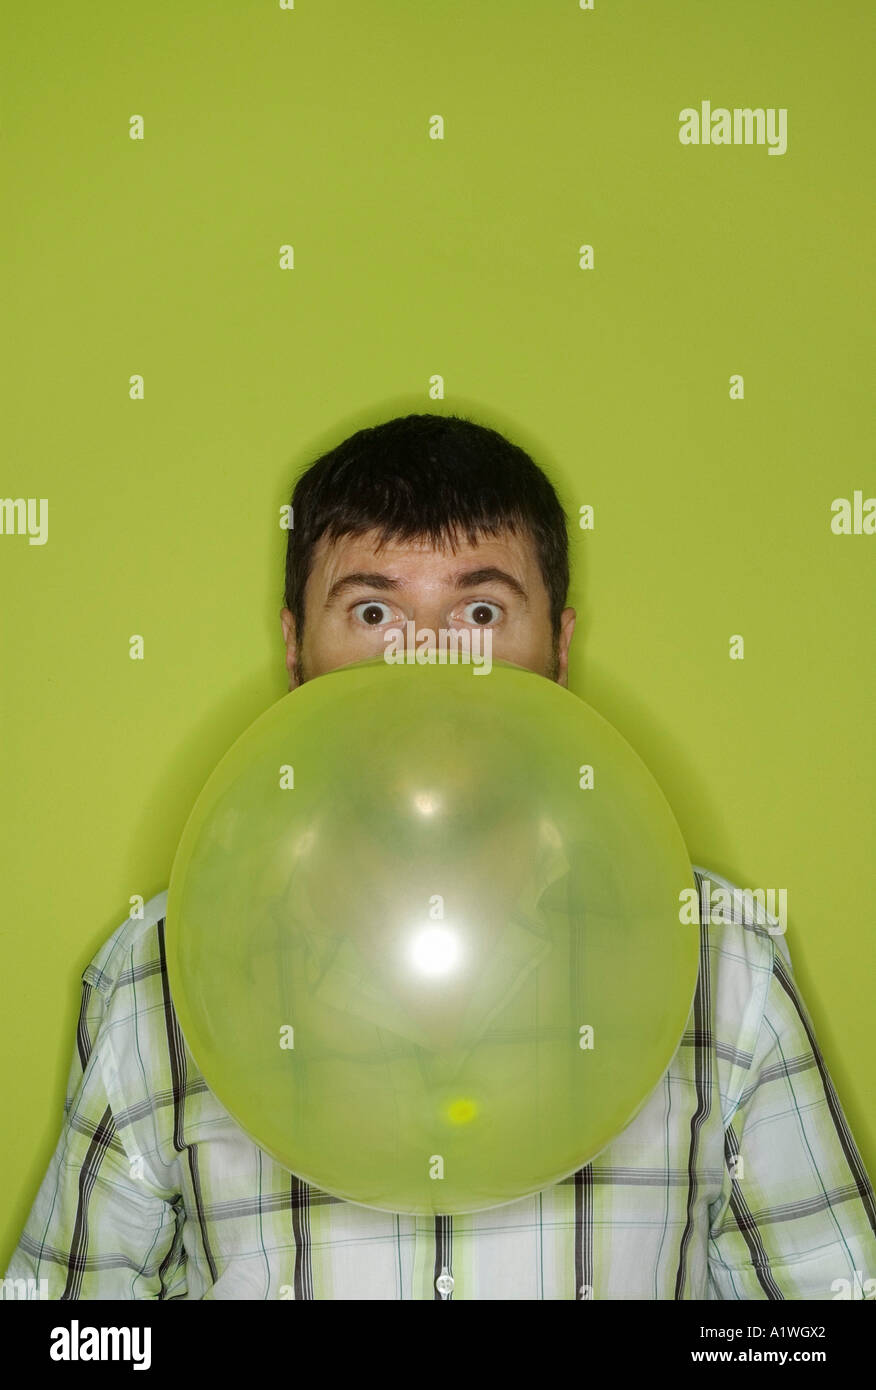 MAN INFLATING BALLOON - Stock Image